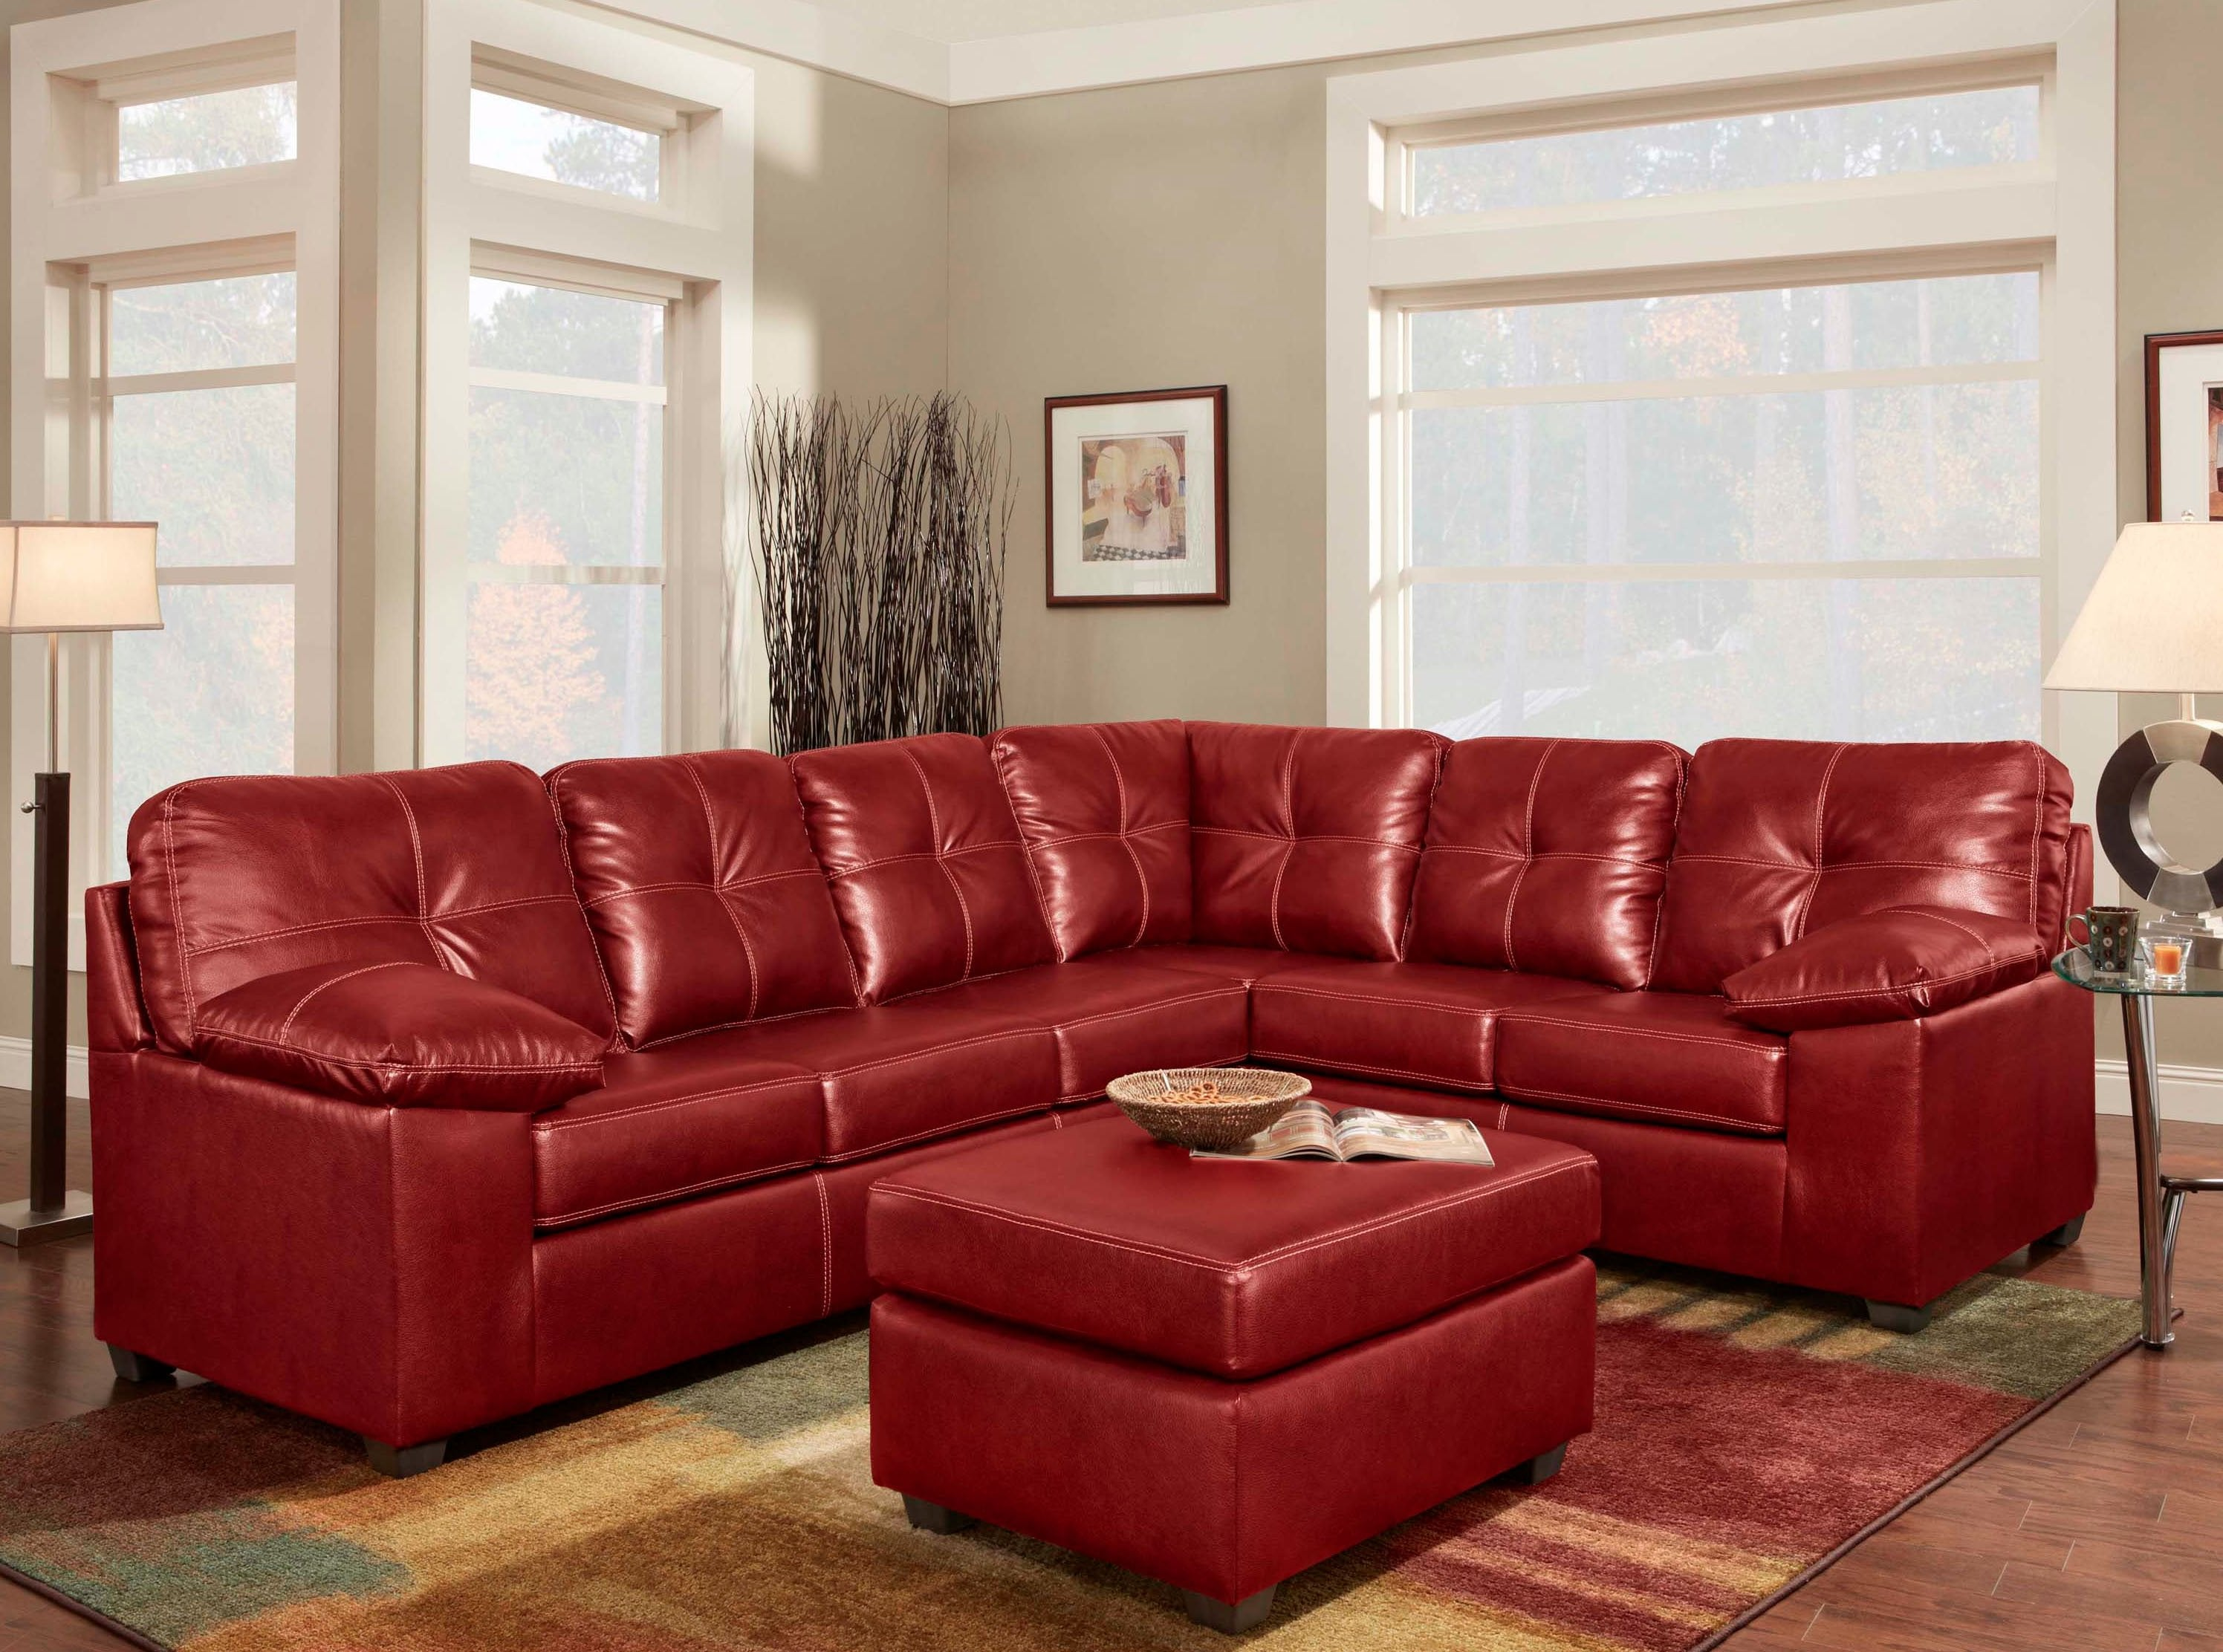 Lipstick Red Sectional Sofa Set